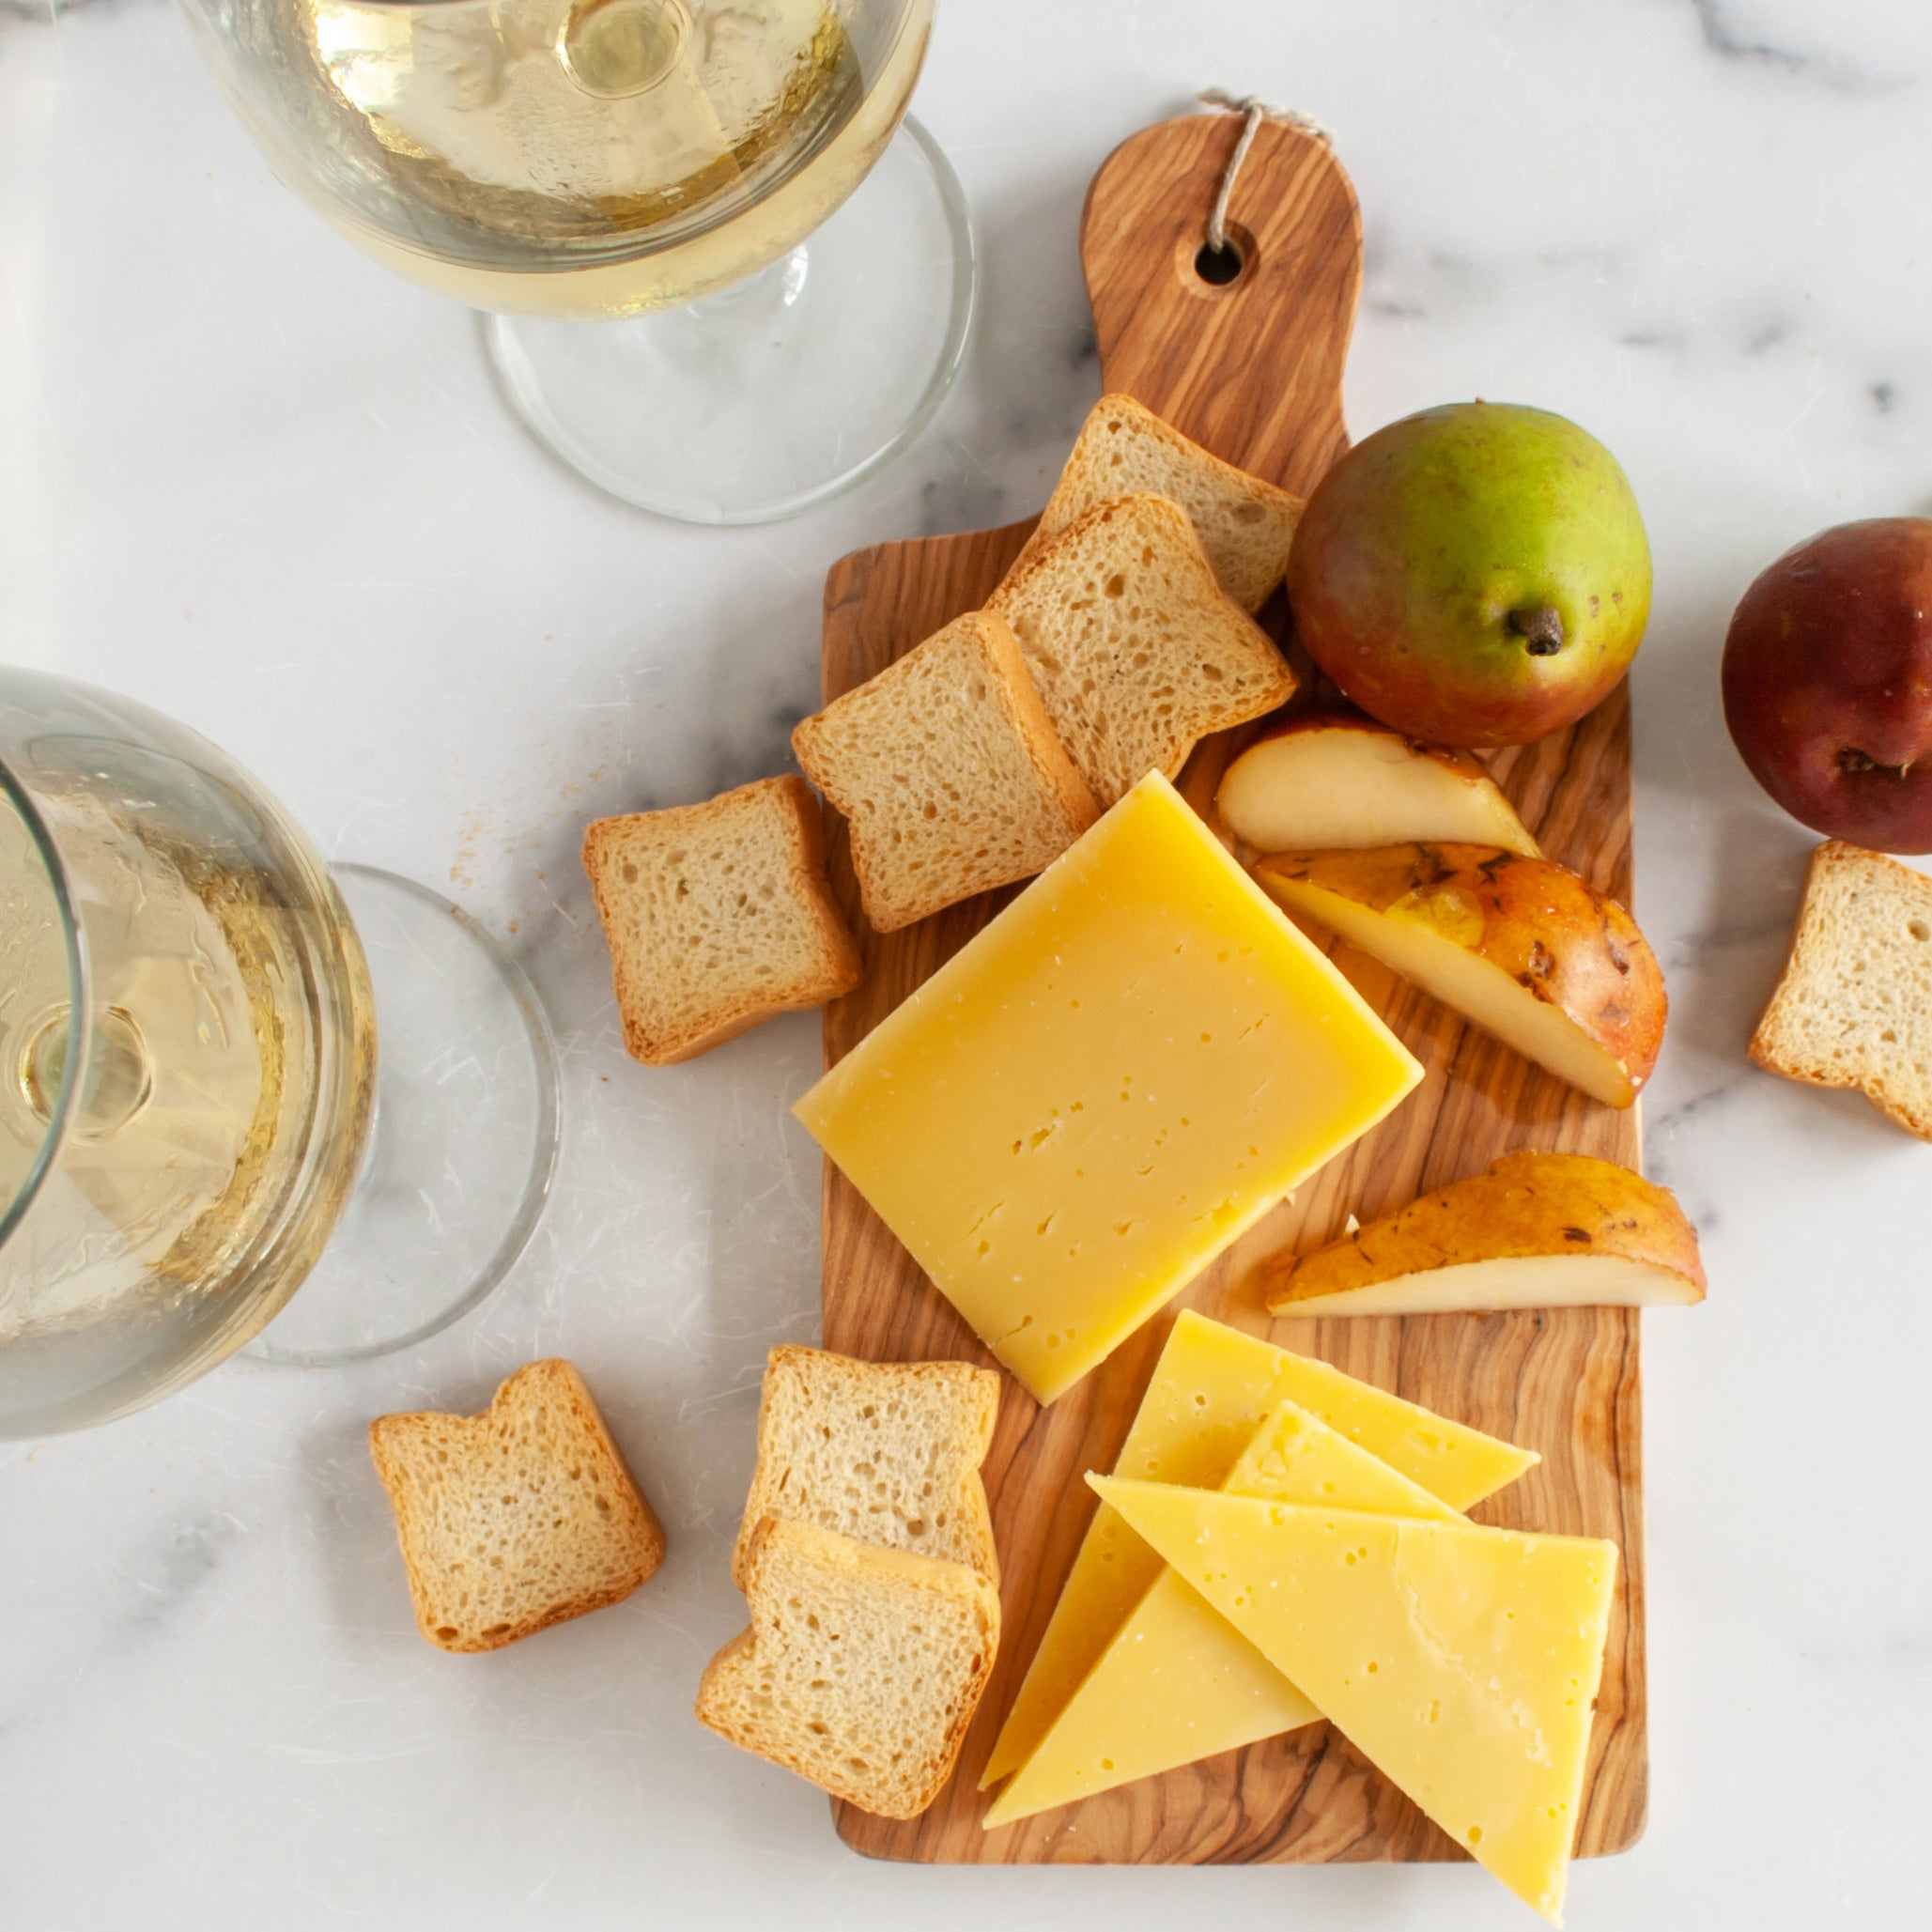 Chardonnay Cheese Assortment